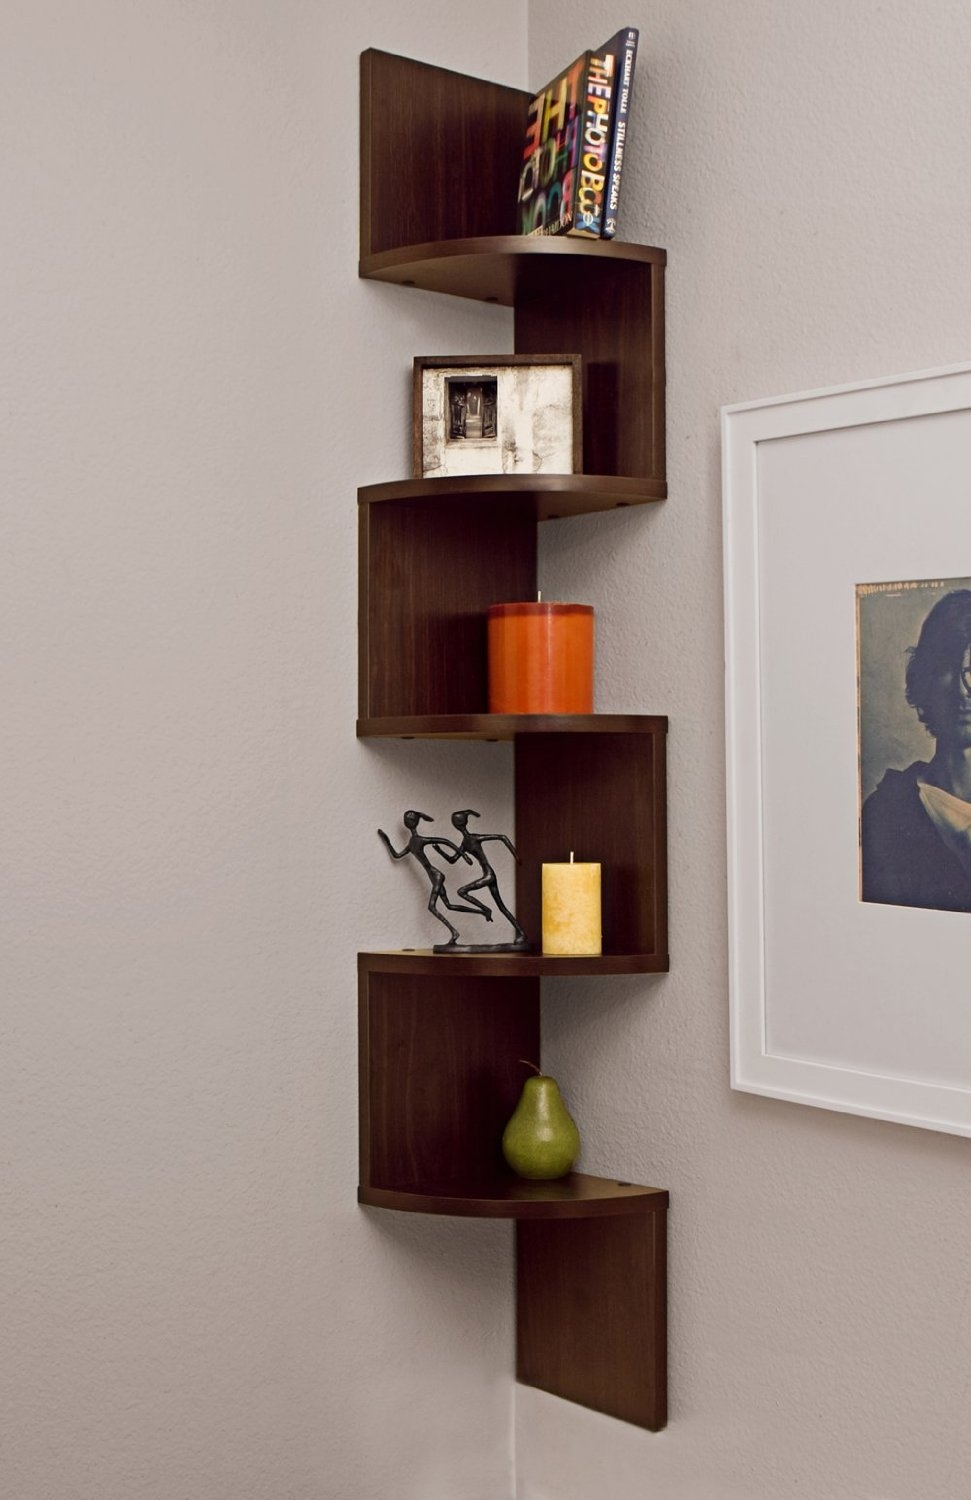 7 Main Types Of Corner Shelves Used For Decor And Storage With Corner Shelf (View 2 of 12)